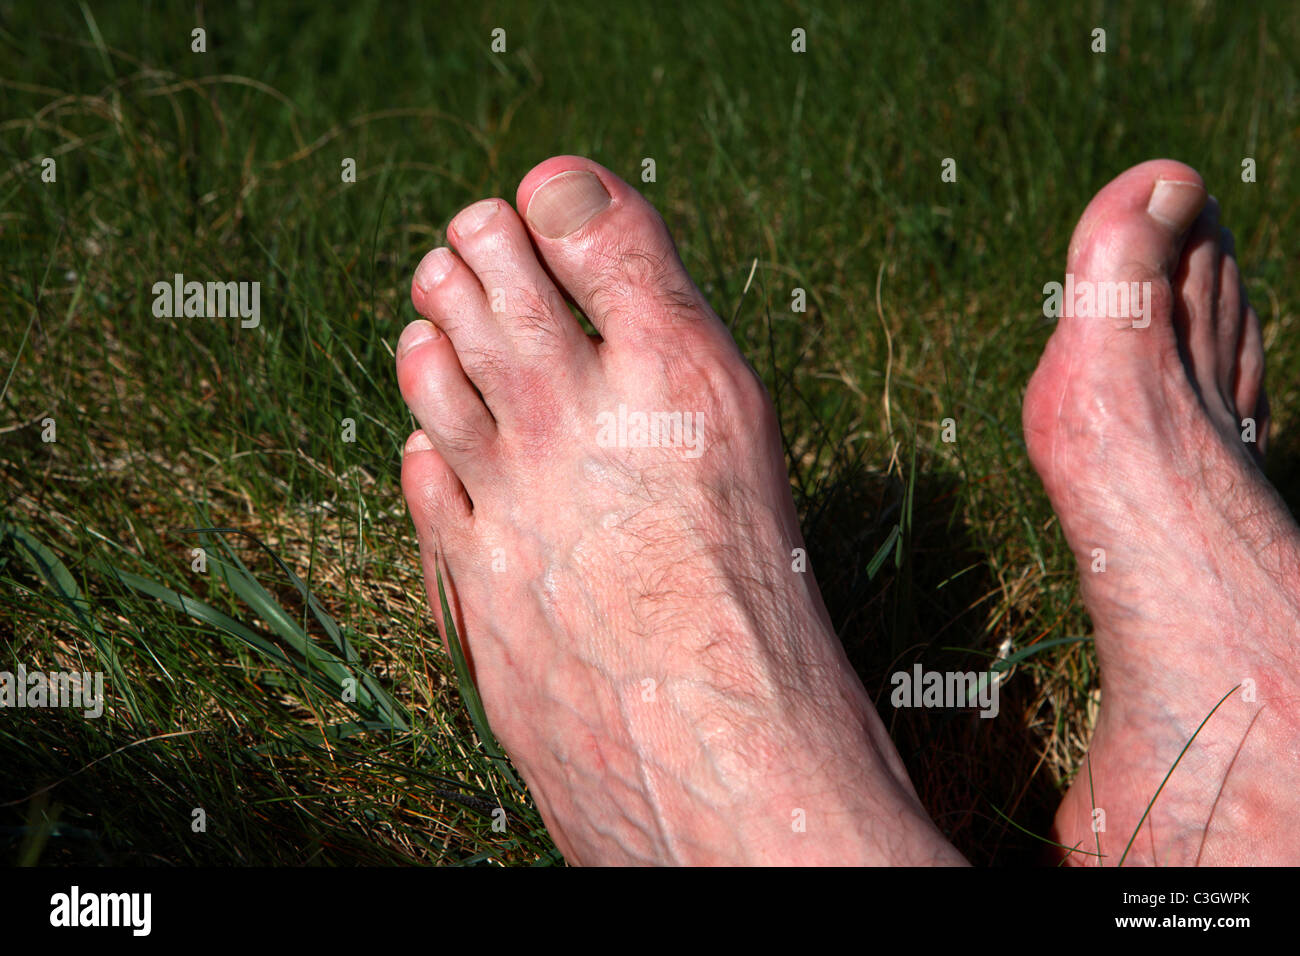 Man's feet with conjoined toes - Stock Image